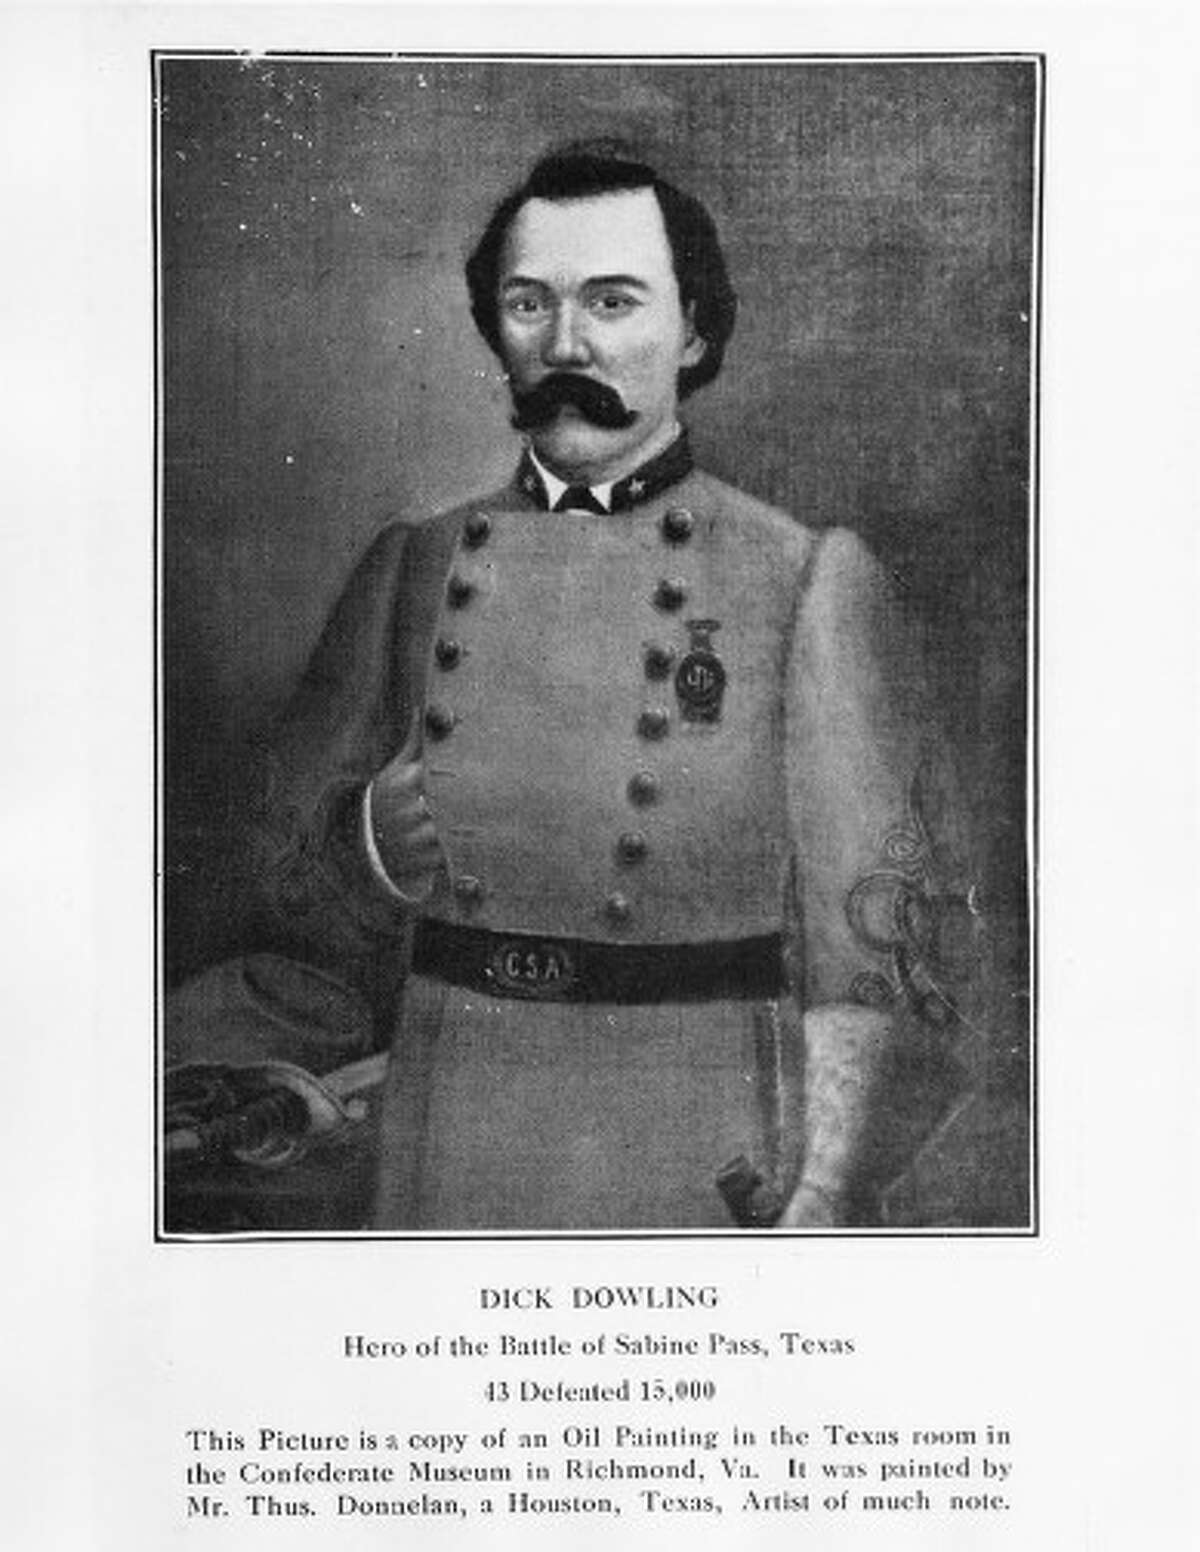 Dowling Middle School was named after Richard Dowling, a Confederate army officer. According to the most recent data from the 2013-14 school year, the school is now 57.7 percent Hispanic, 40.3 percent African American, 0.4 percent Asian, and 1.1 percent white.